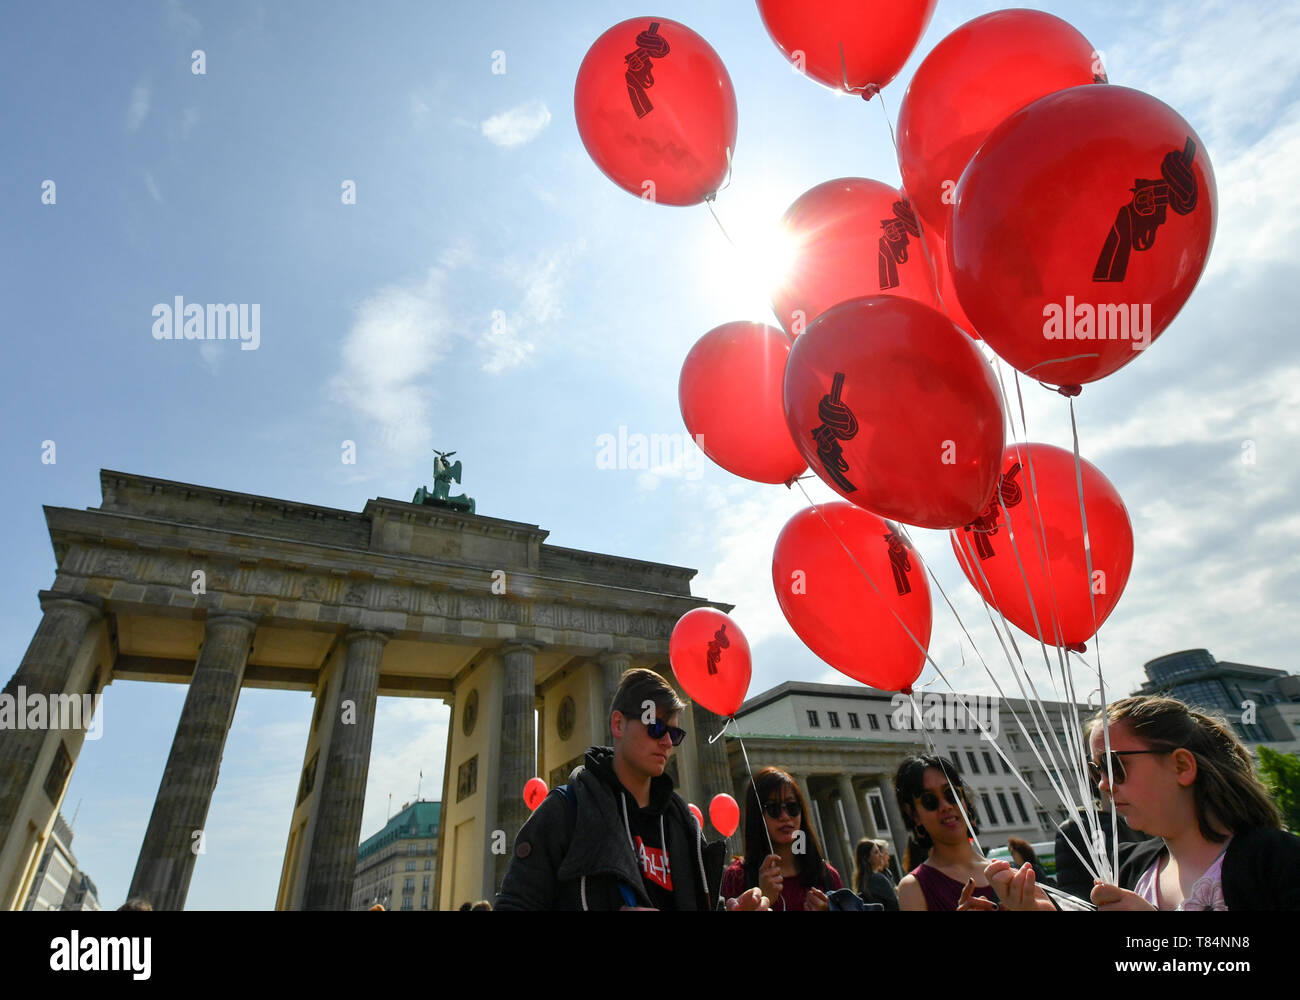 Berlin, Germany. 11th May, 2019. Balloons depicting a pistol with a knot in its barrel are distributed in front of the Brandenburg Gate during an art action of the 'Aktion Aufschrei - Stoppt den Waffenhandel! It is protesting against arms exports to war-participants in Yemen. Credit: Jens Kalaene/dpa-Zentralbild/dpa/Alamy Live News - Stock Image